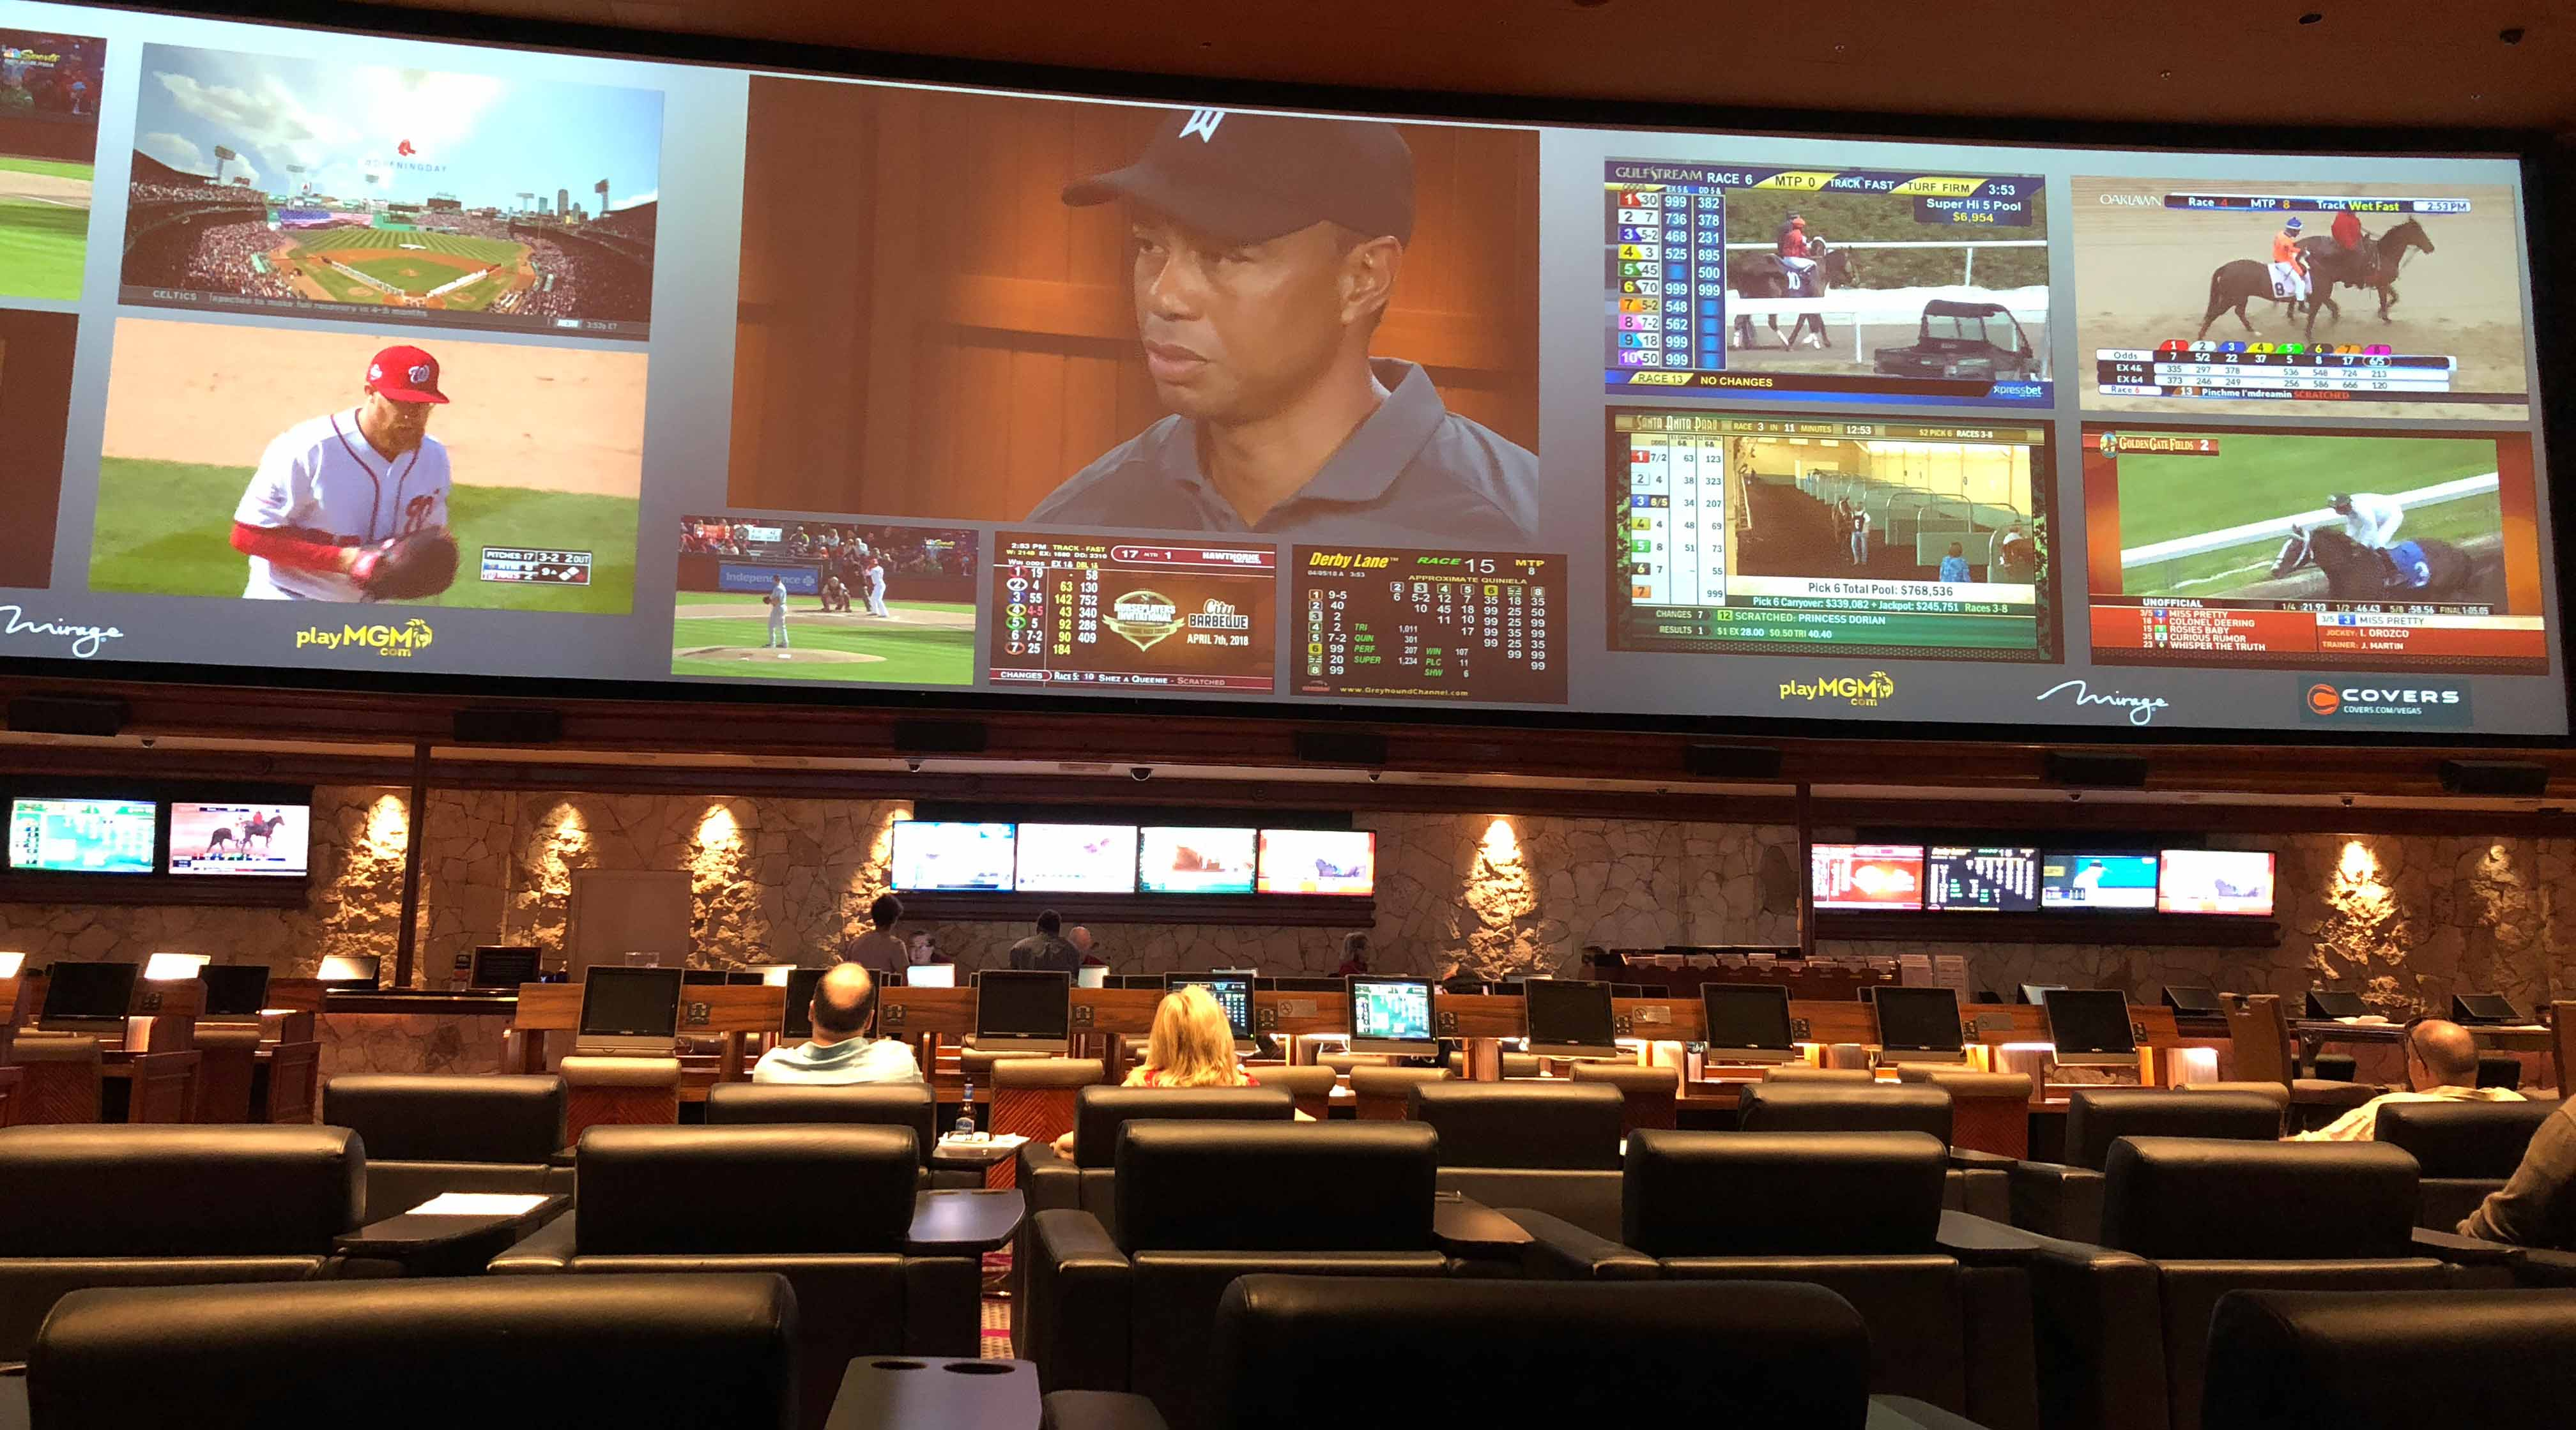 The Masters took center stage Thursday at the Mirage sportsbook in Las Vegas.